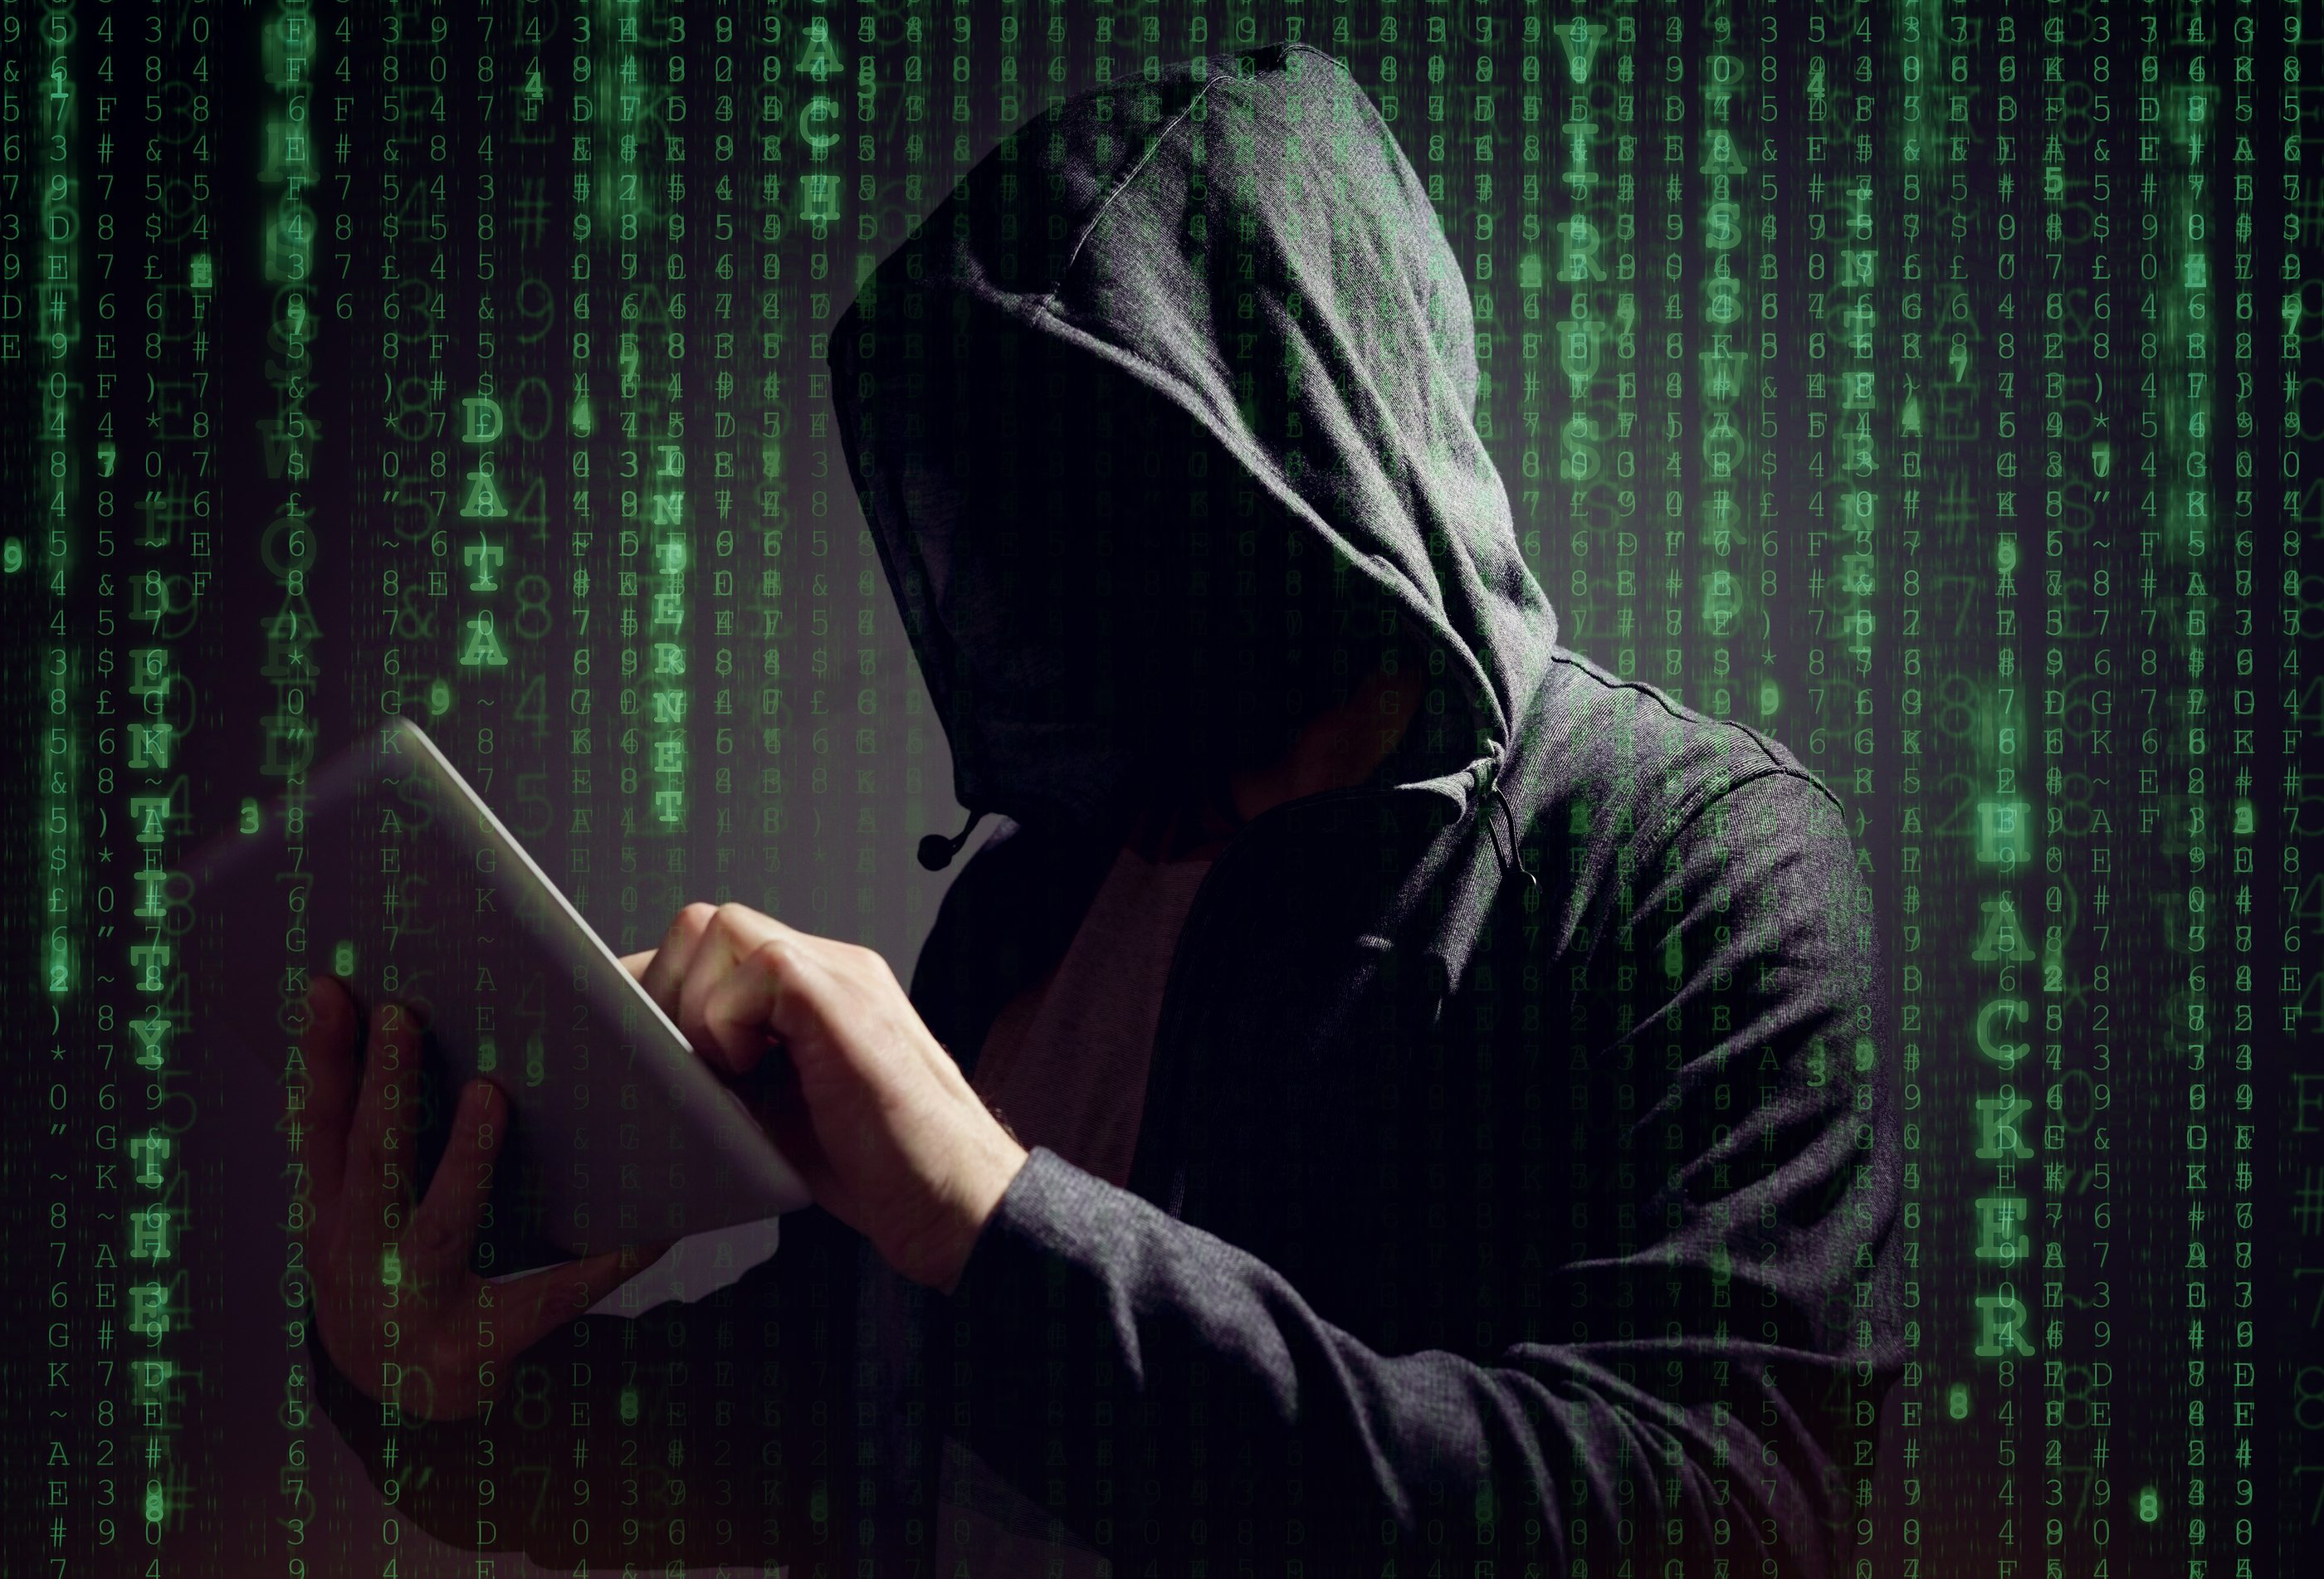 Computer hacker with digital tablet stealing data